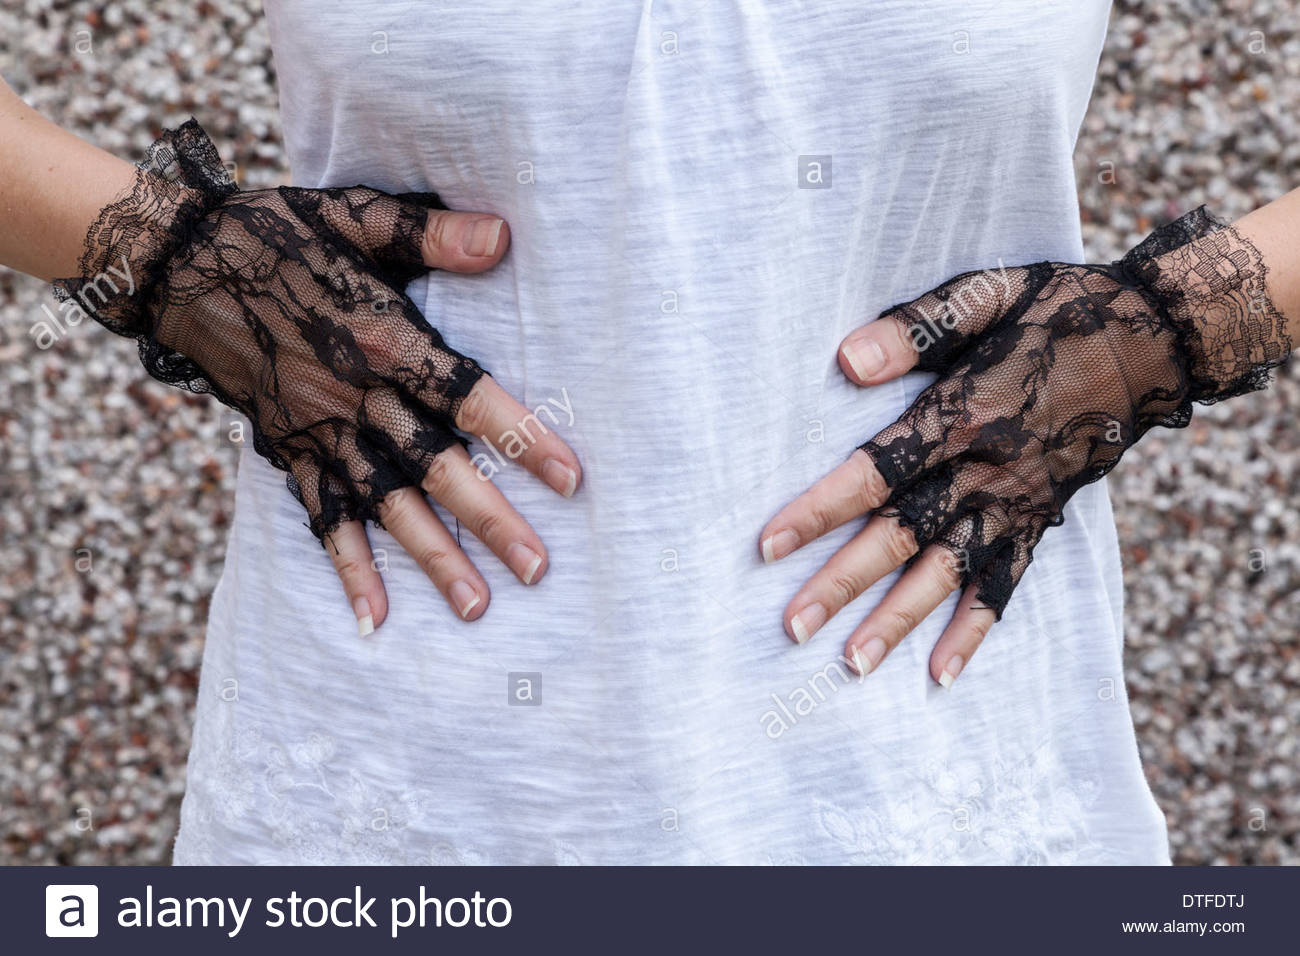 Woman with hands on stomach - Stock Image